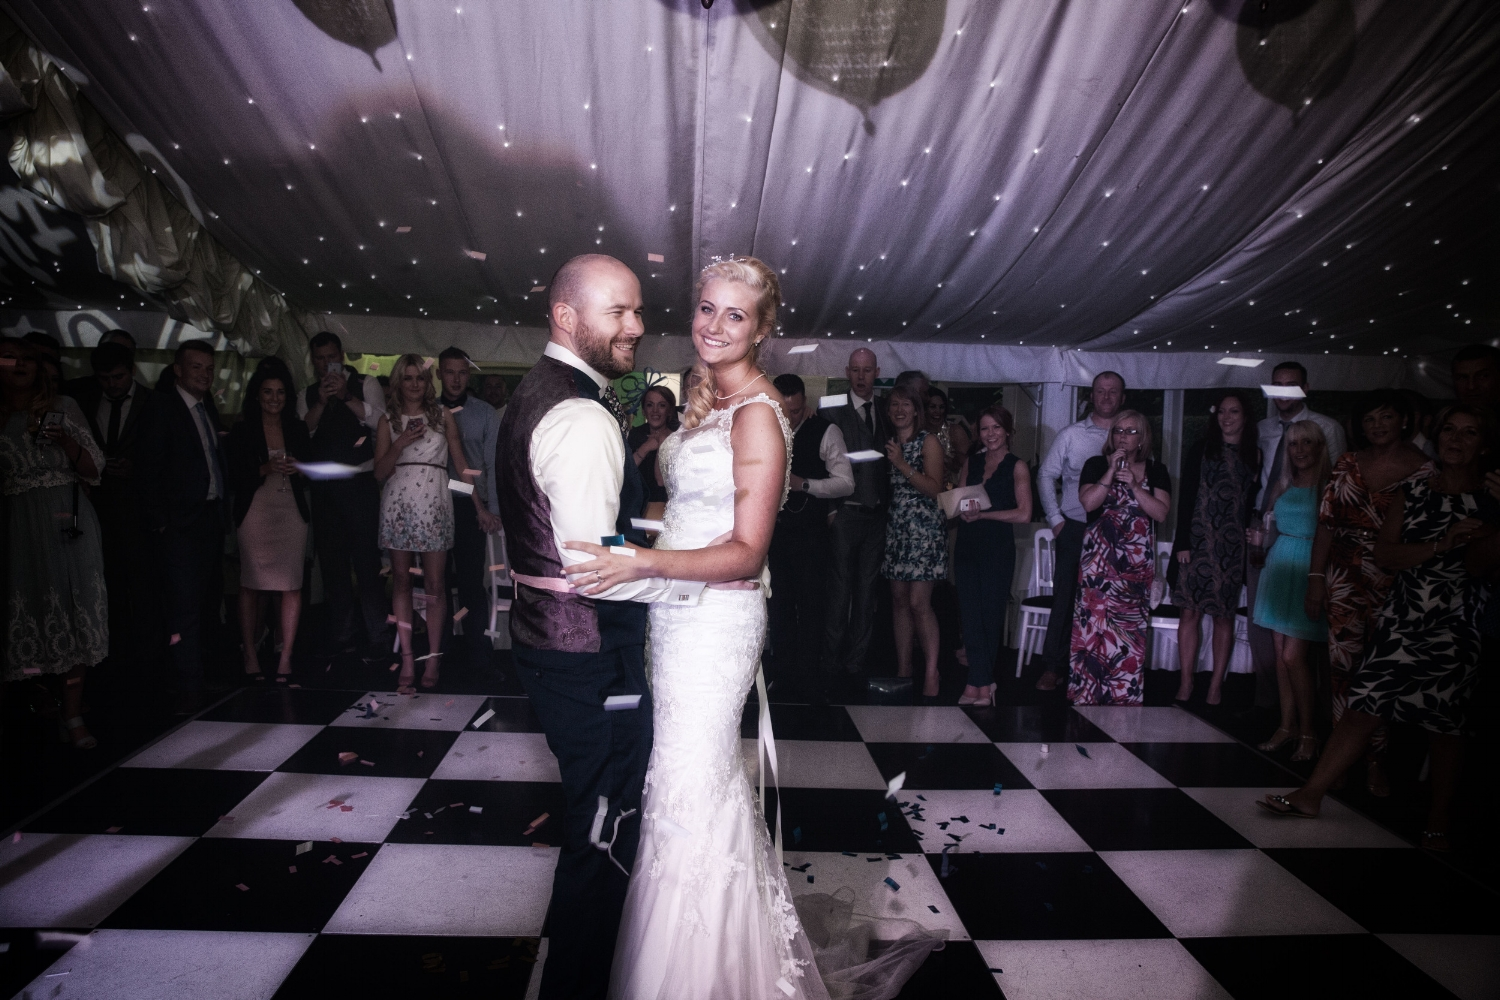 Moxhull Hall, Sutton Coldfield, Mark and Lizzie, Elizabeth, O'Donnel, Lucria Creative, Wayne Hudson,  Wedding, bride, groom, photography, coventry, first dance